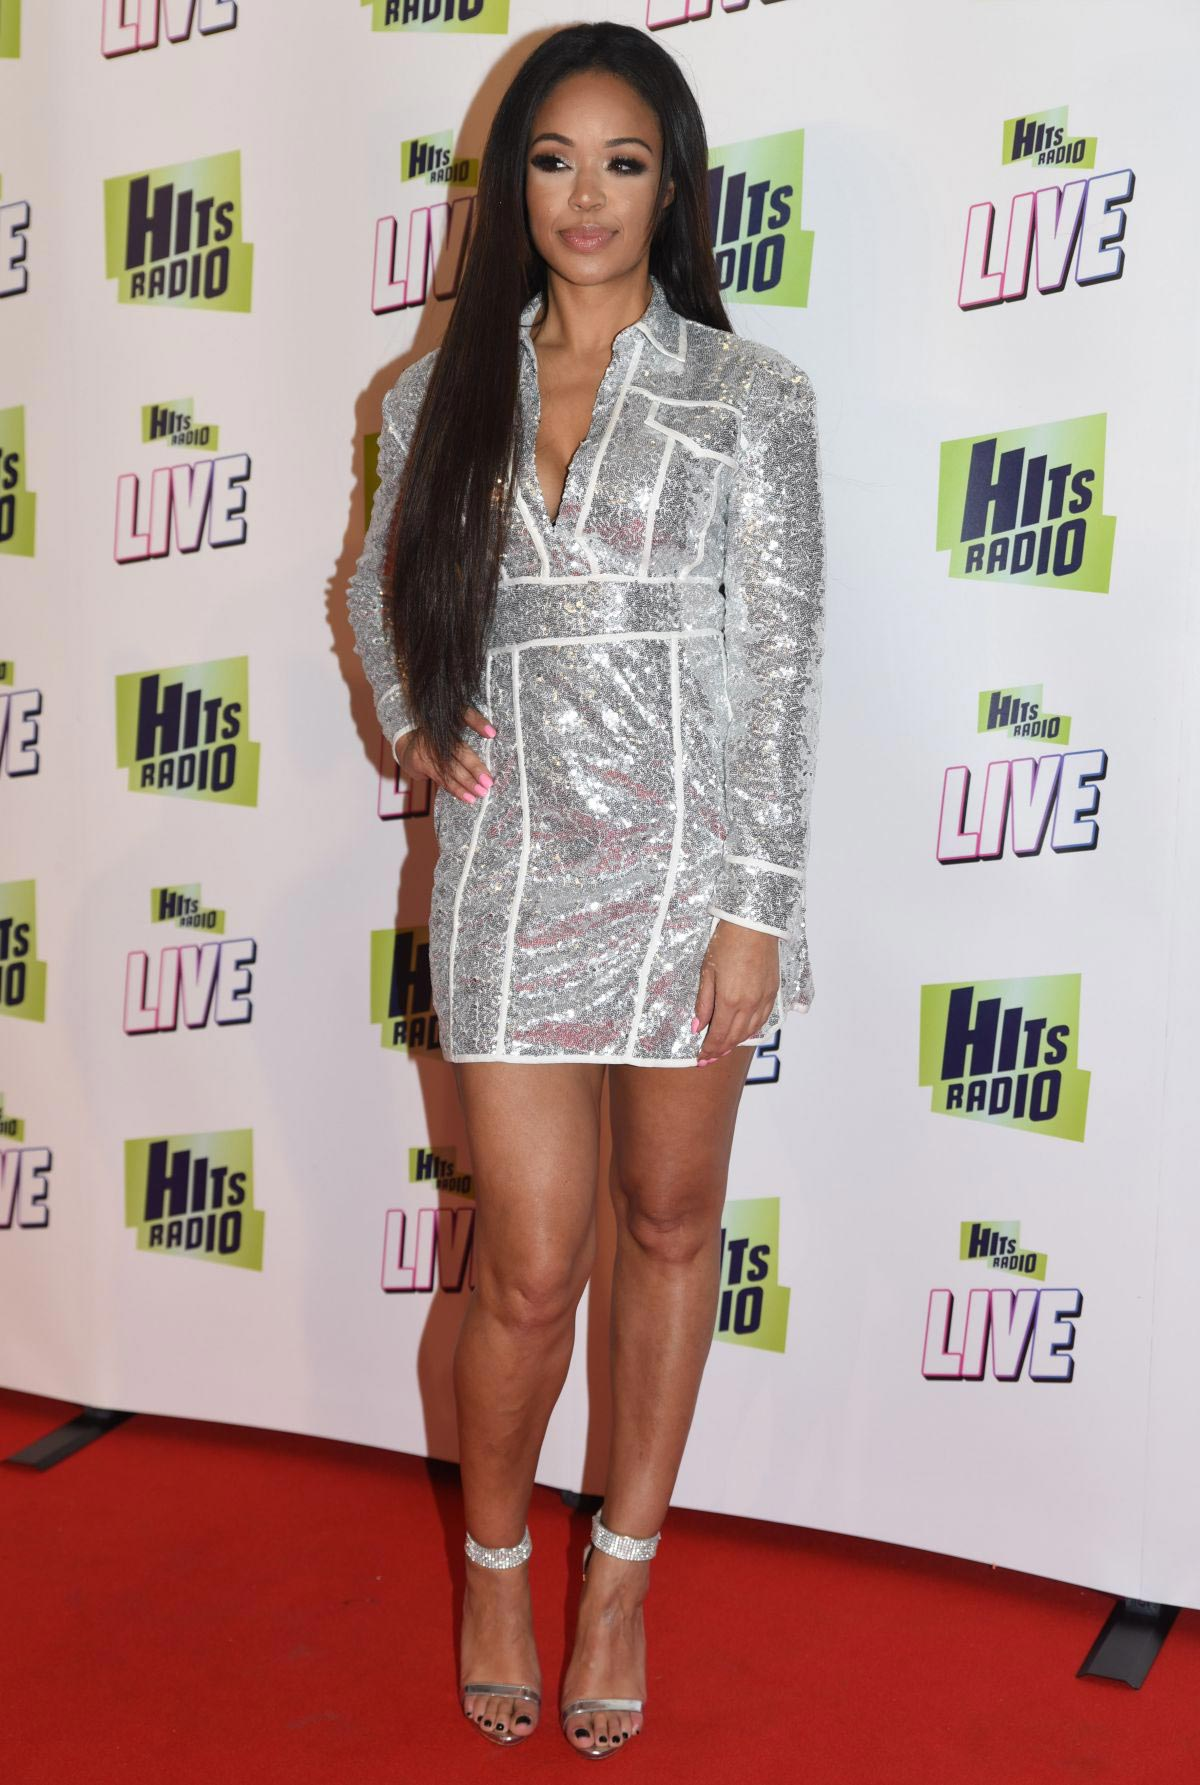 Sarah-Jane Crawford at 2018 Hits Radio Live Event in Manchester 2018/11/25 1